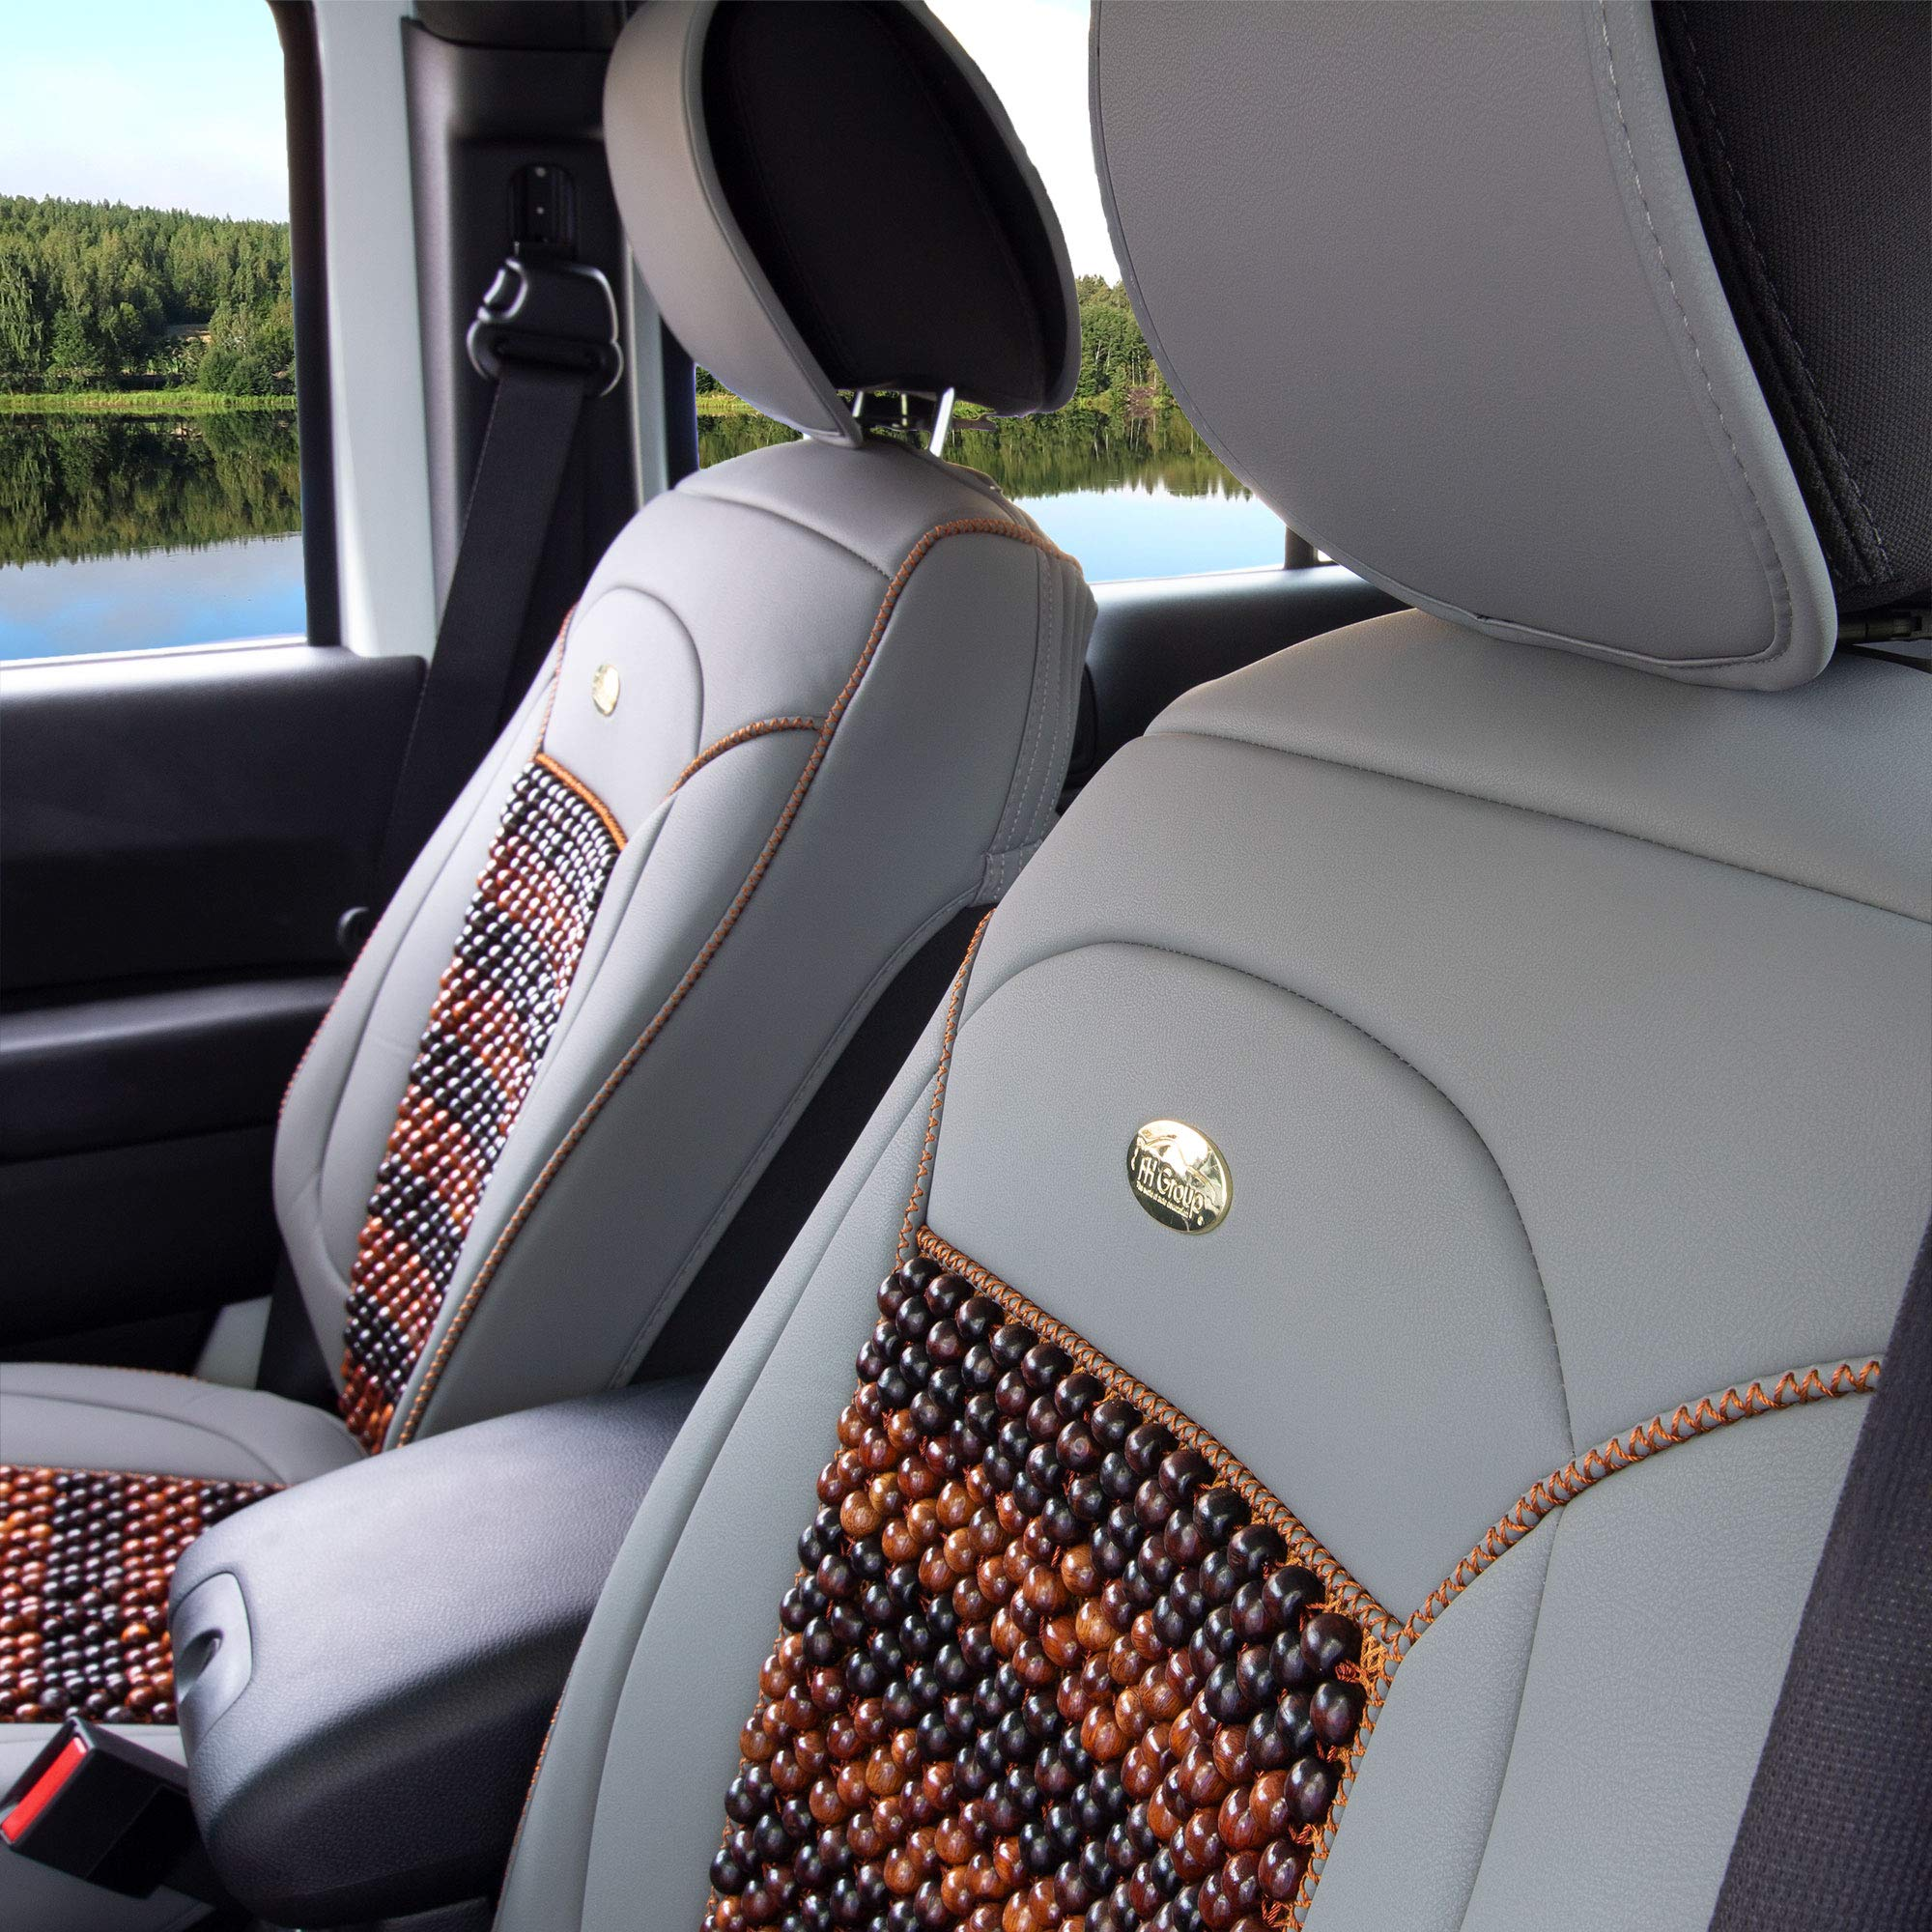 FH Group PU203102 Premium Leather Seat Leather Cushion Pad Seat Covers Gray Color w. Cooling Rosewood Beads-Fit Most Car, Truck, SUV, or Van by FH Group (Image #5)